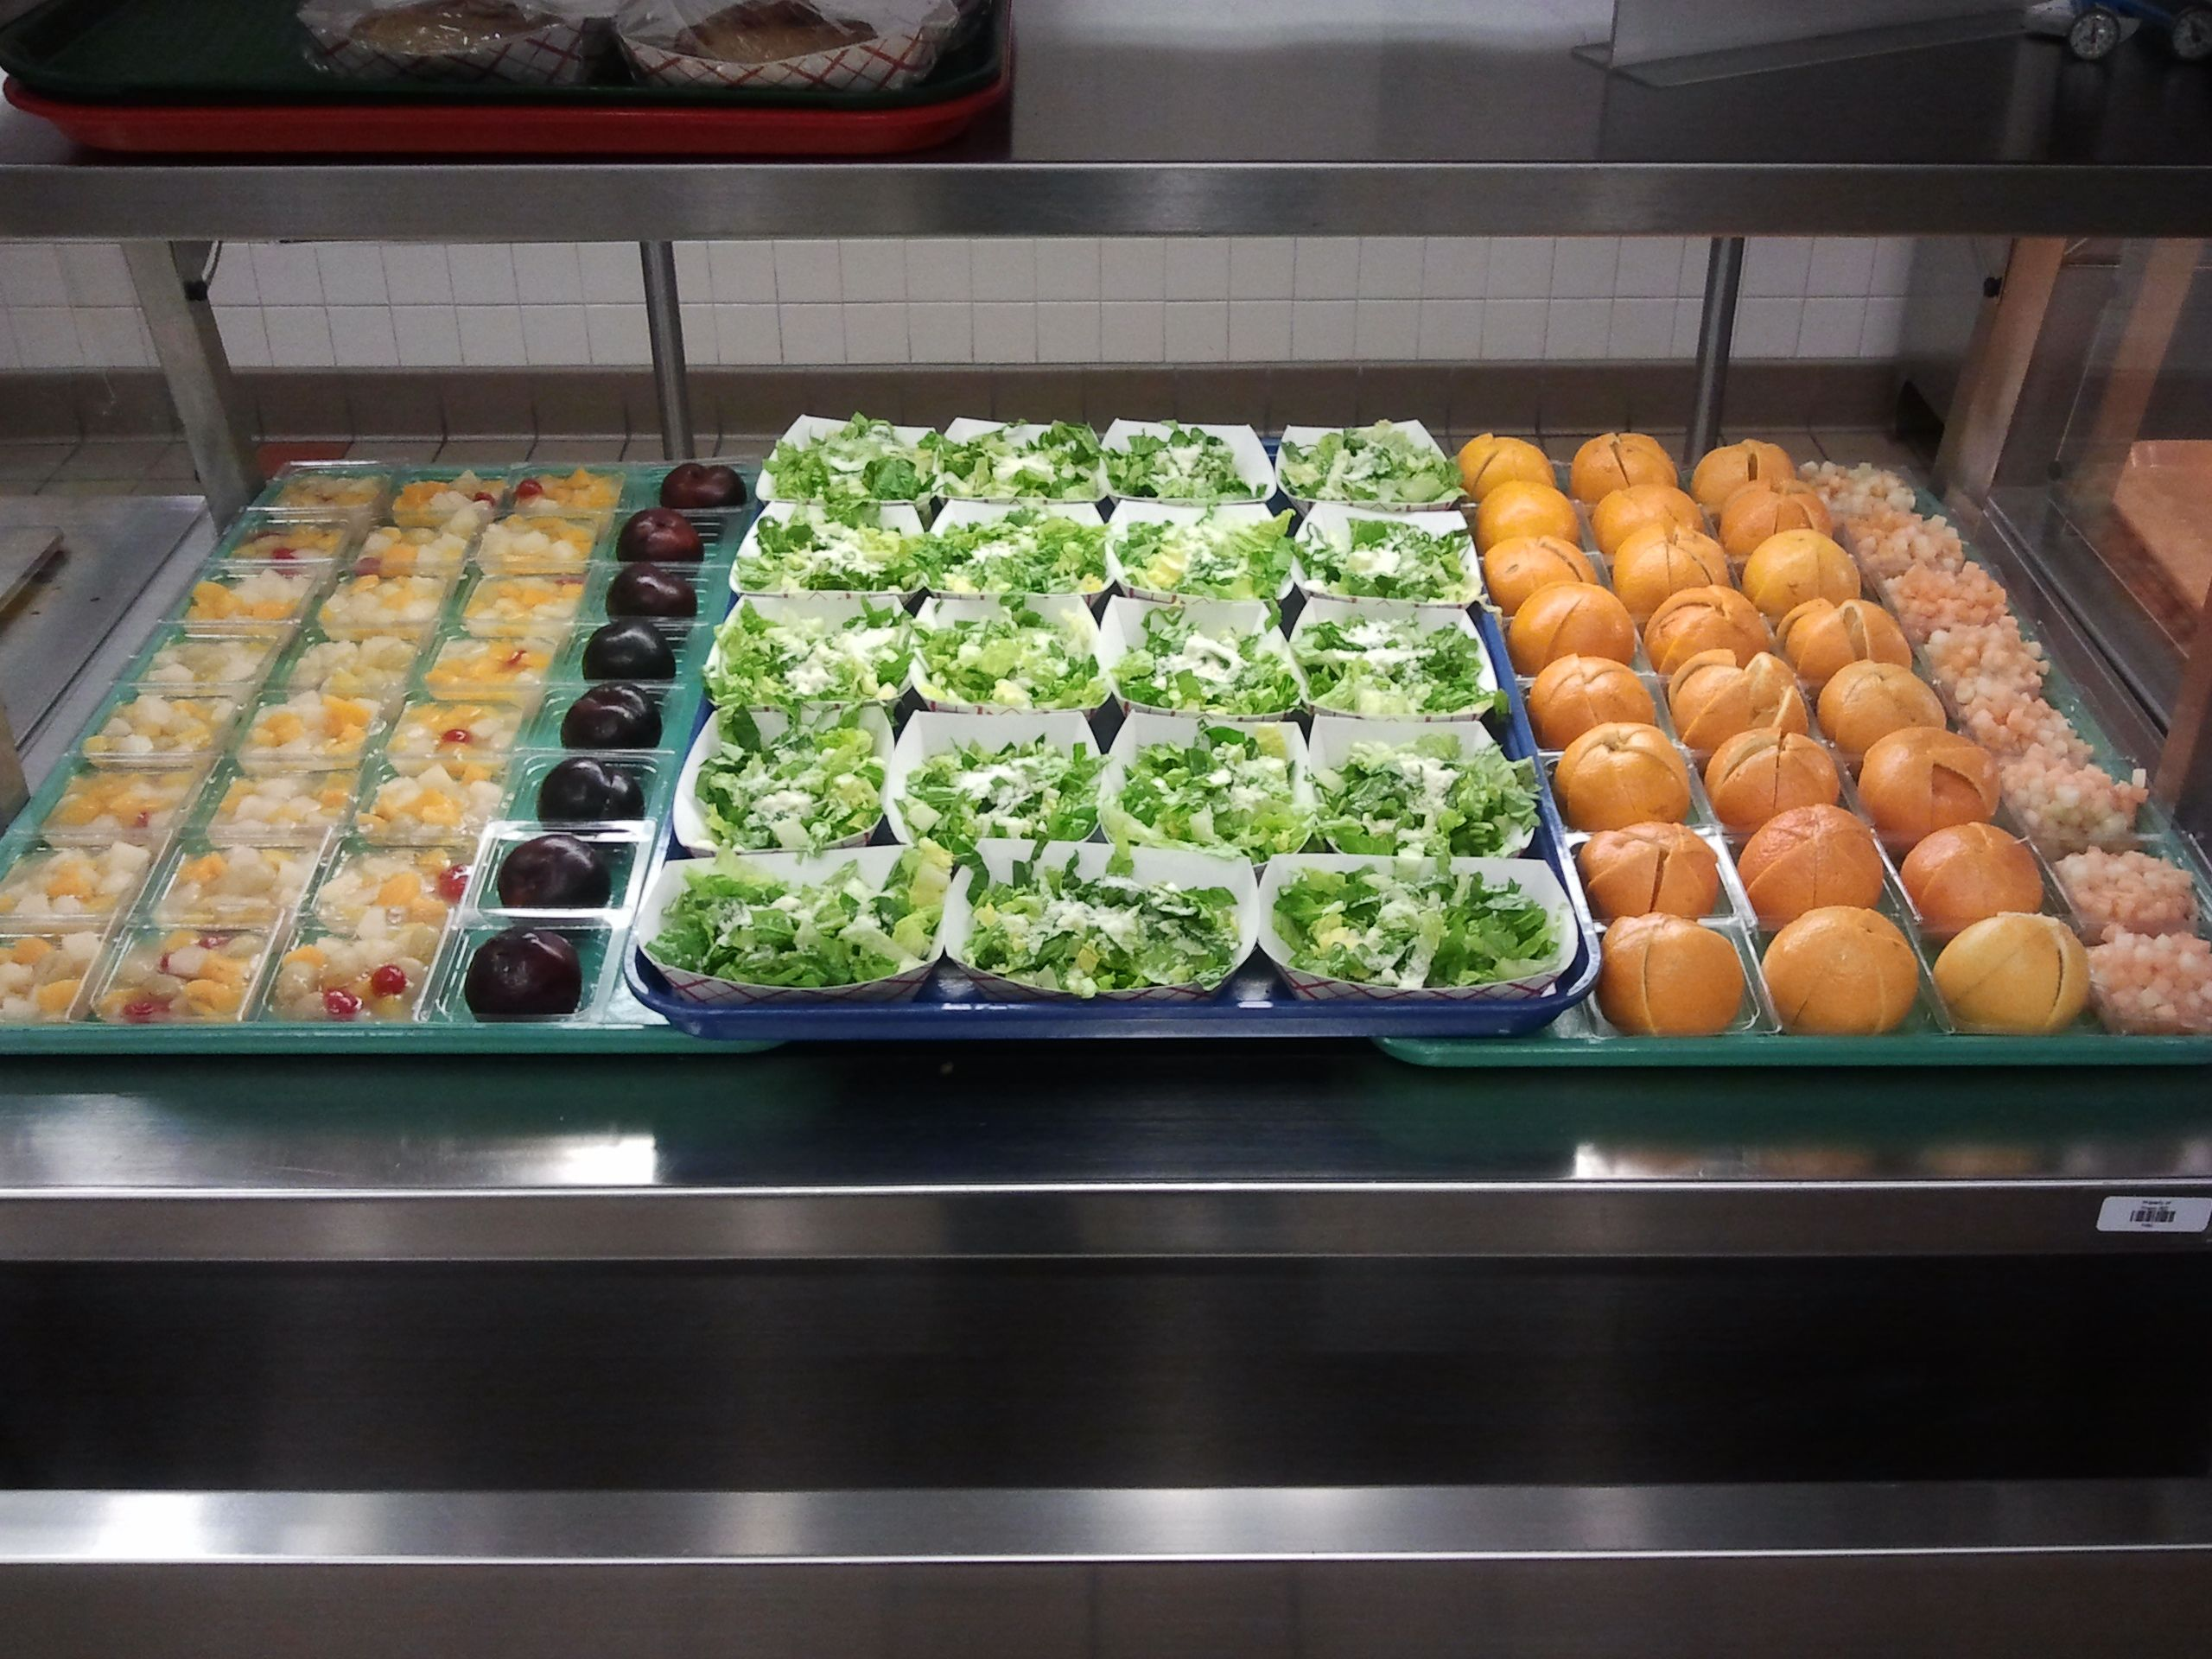 Bright fruit served at Frisco ISD (TX) Food presentation